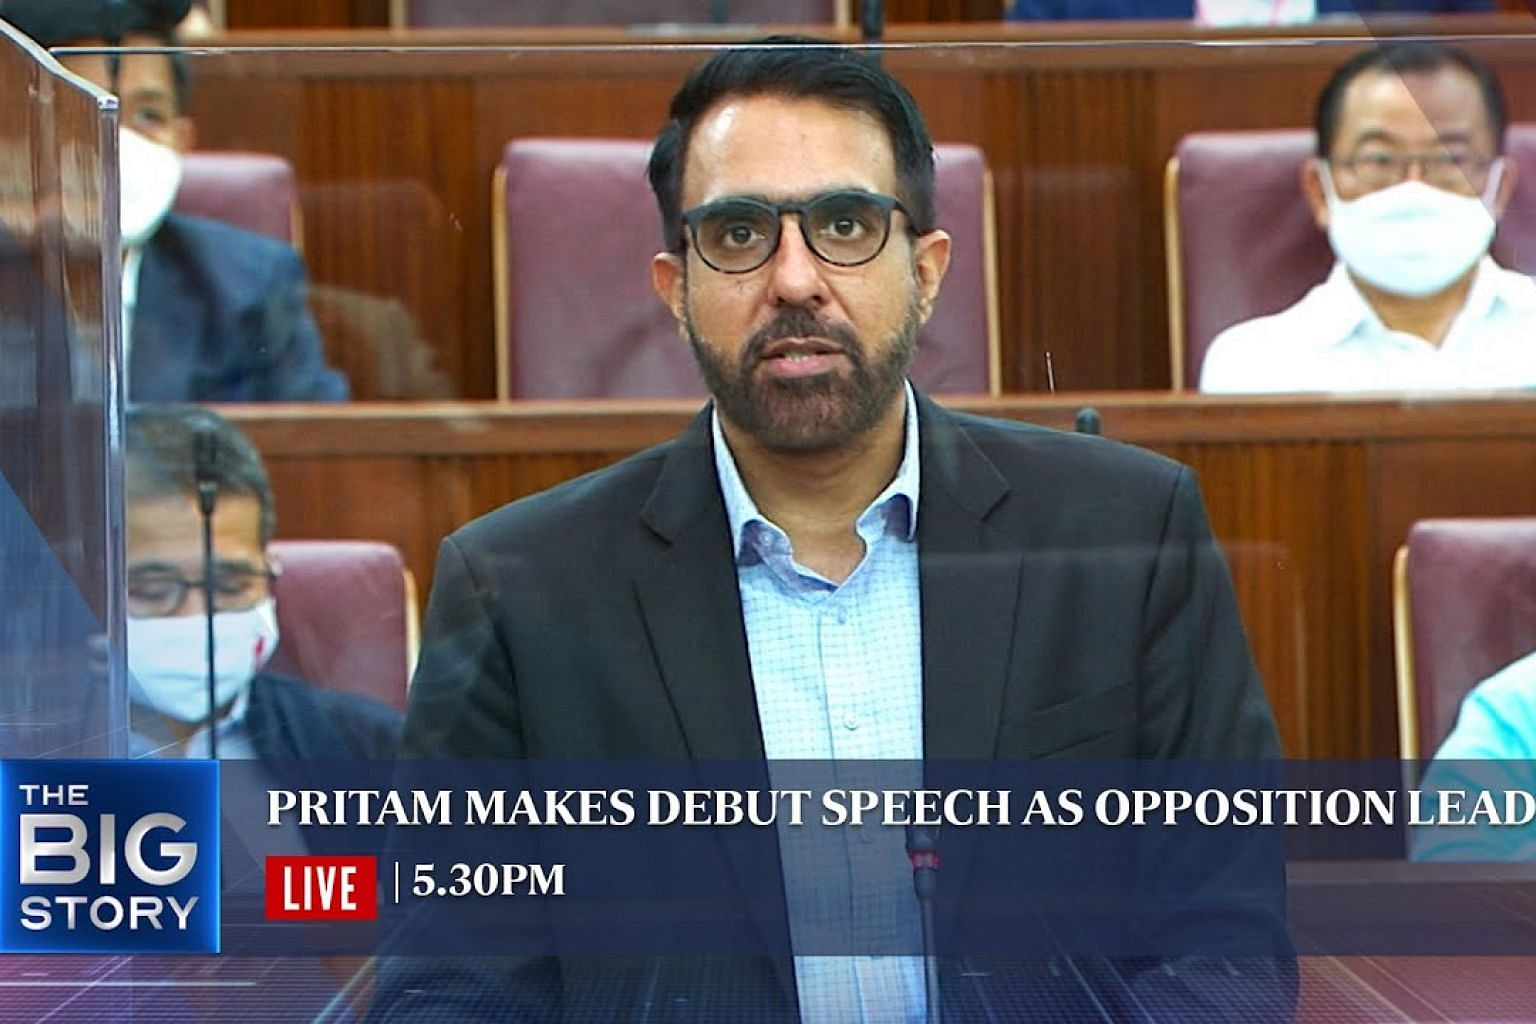 Pritam Singh debuts as Leader of the Opposition   THE BIG STORY